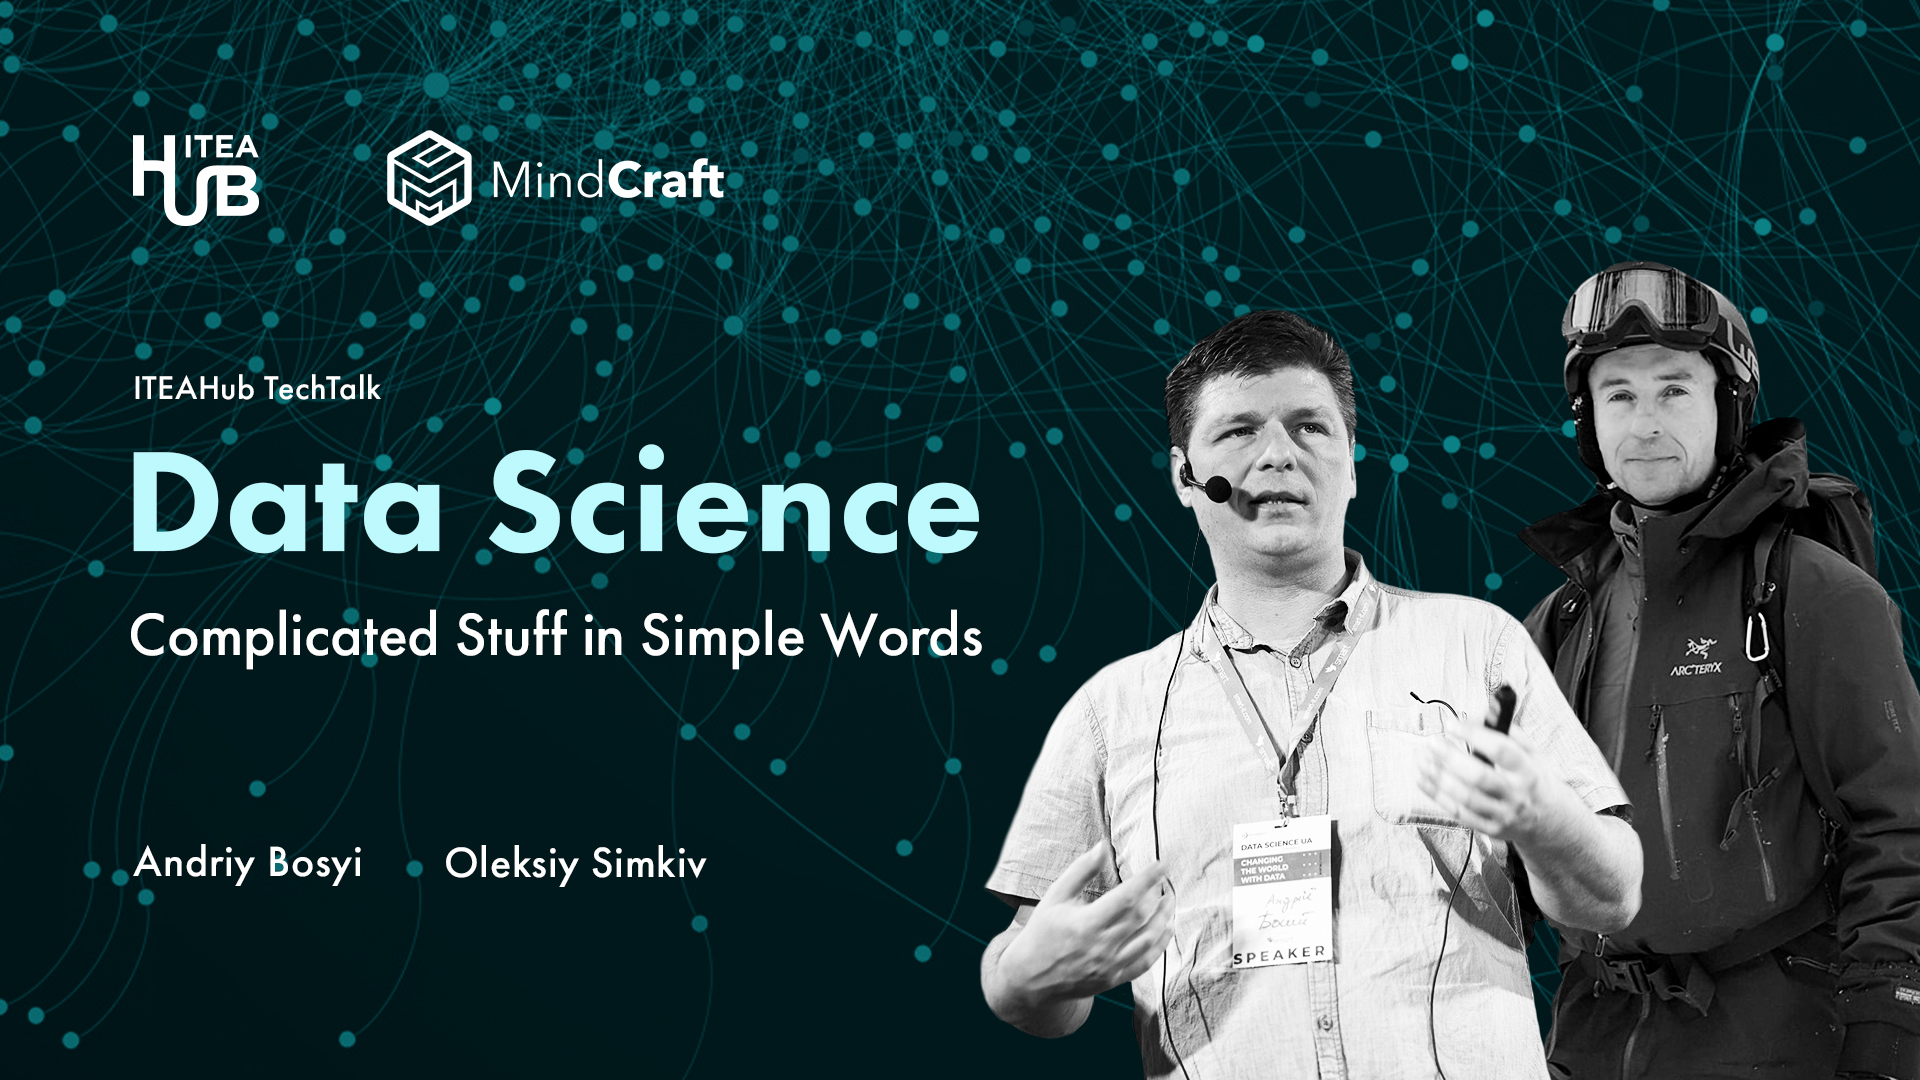 Data Science: Complicated Stuff in Simple Words